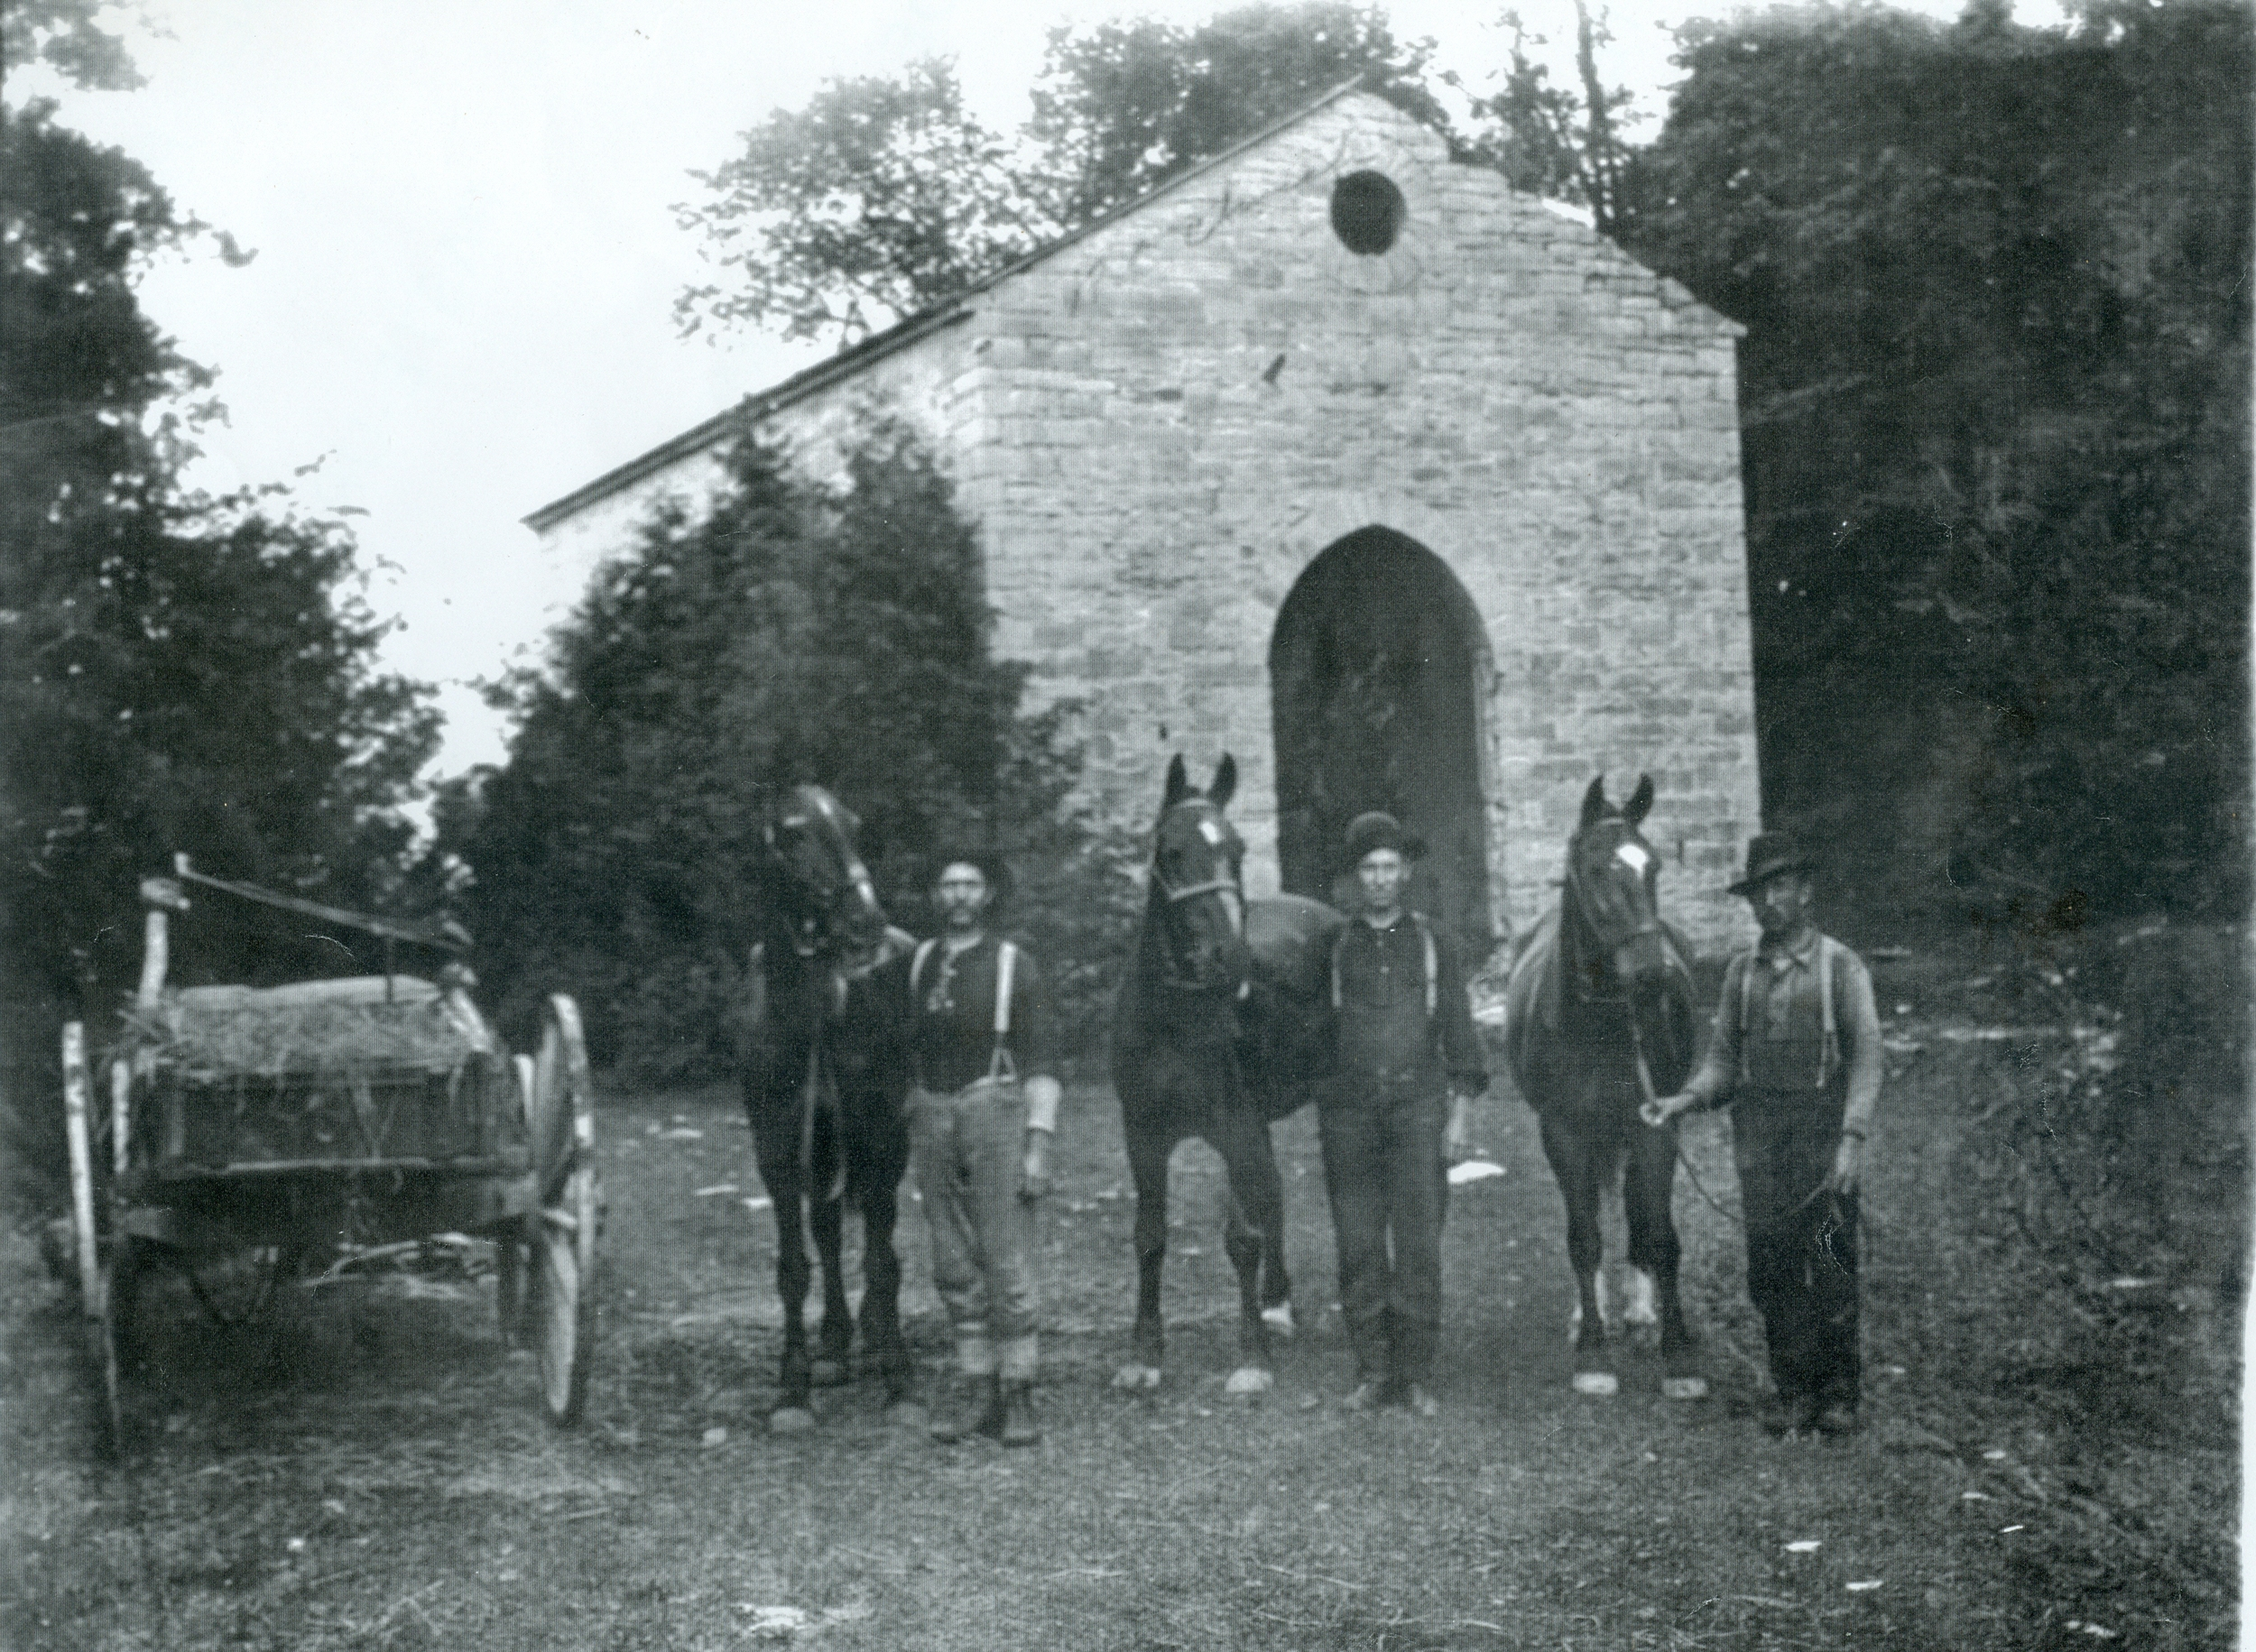 St. Matilda's, Marmora, River drivers John McQuigge, George McQuigge and Enlaw of Campbellford, c 1900